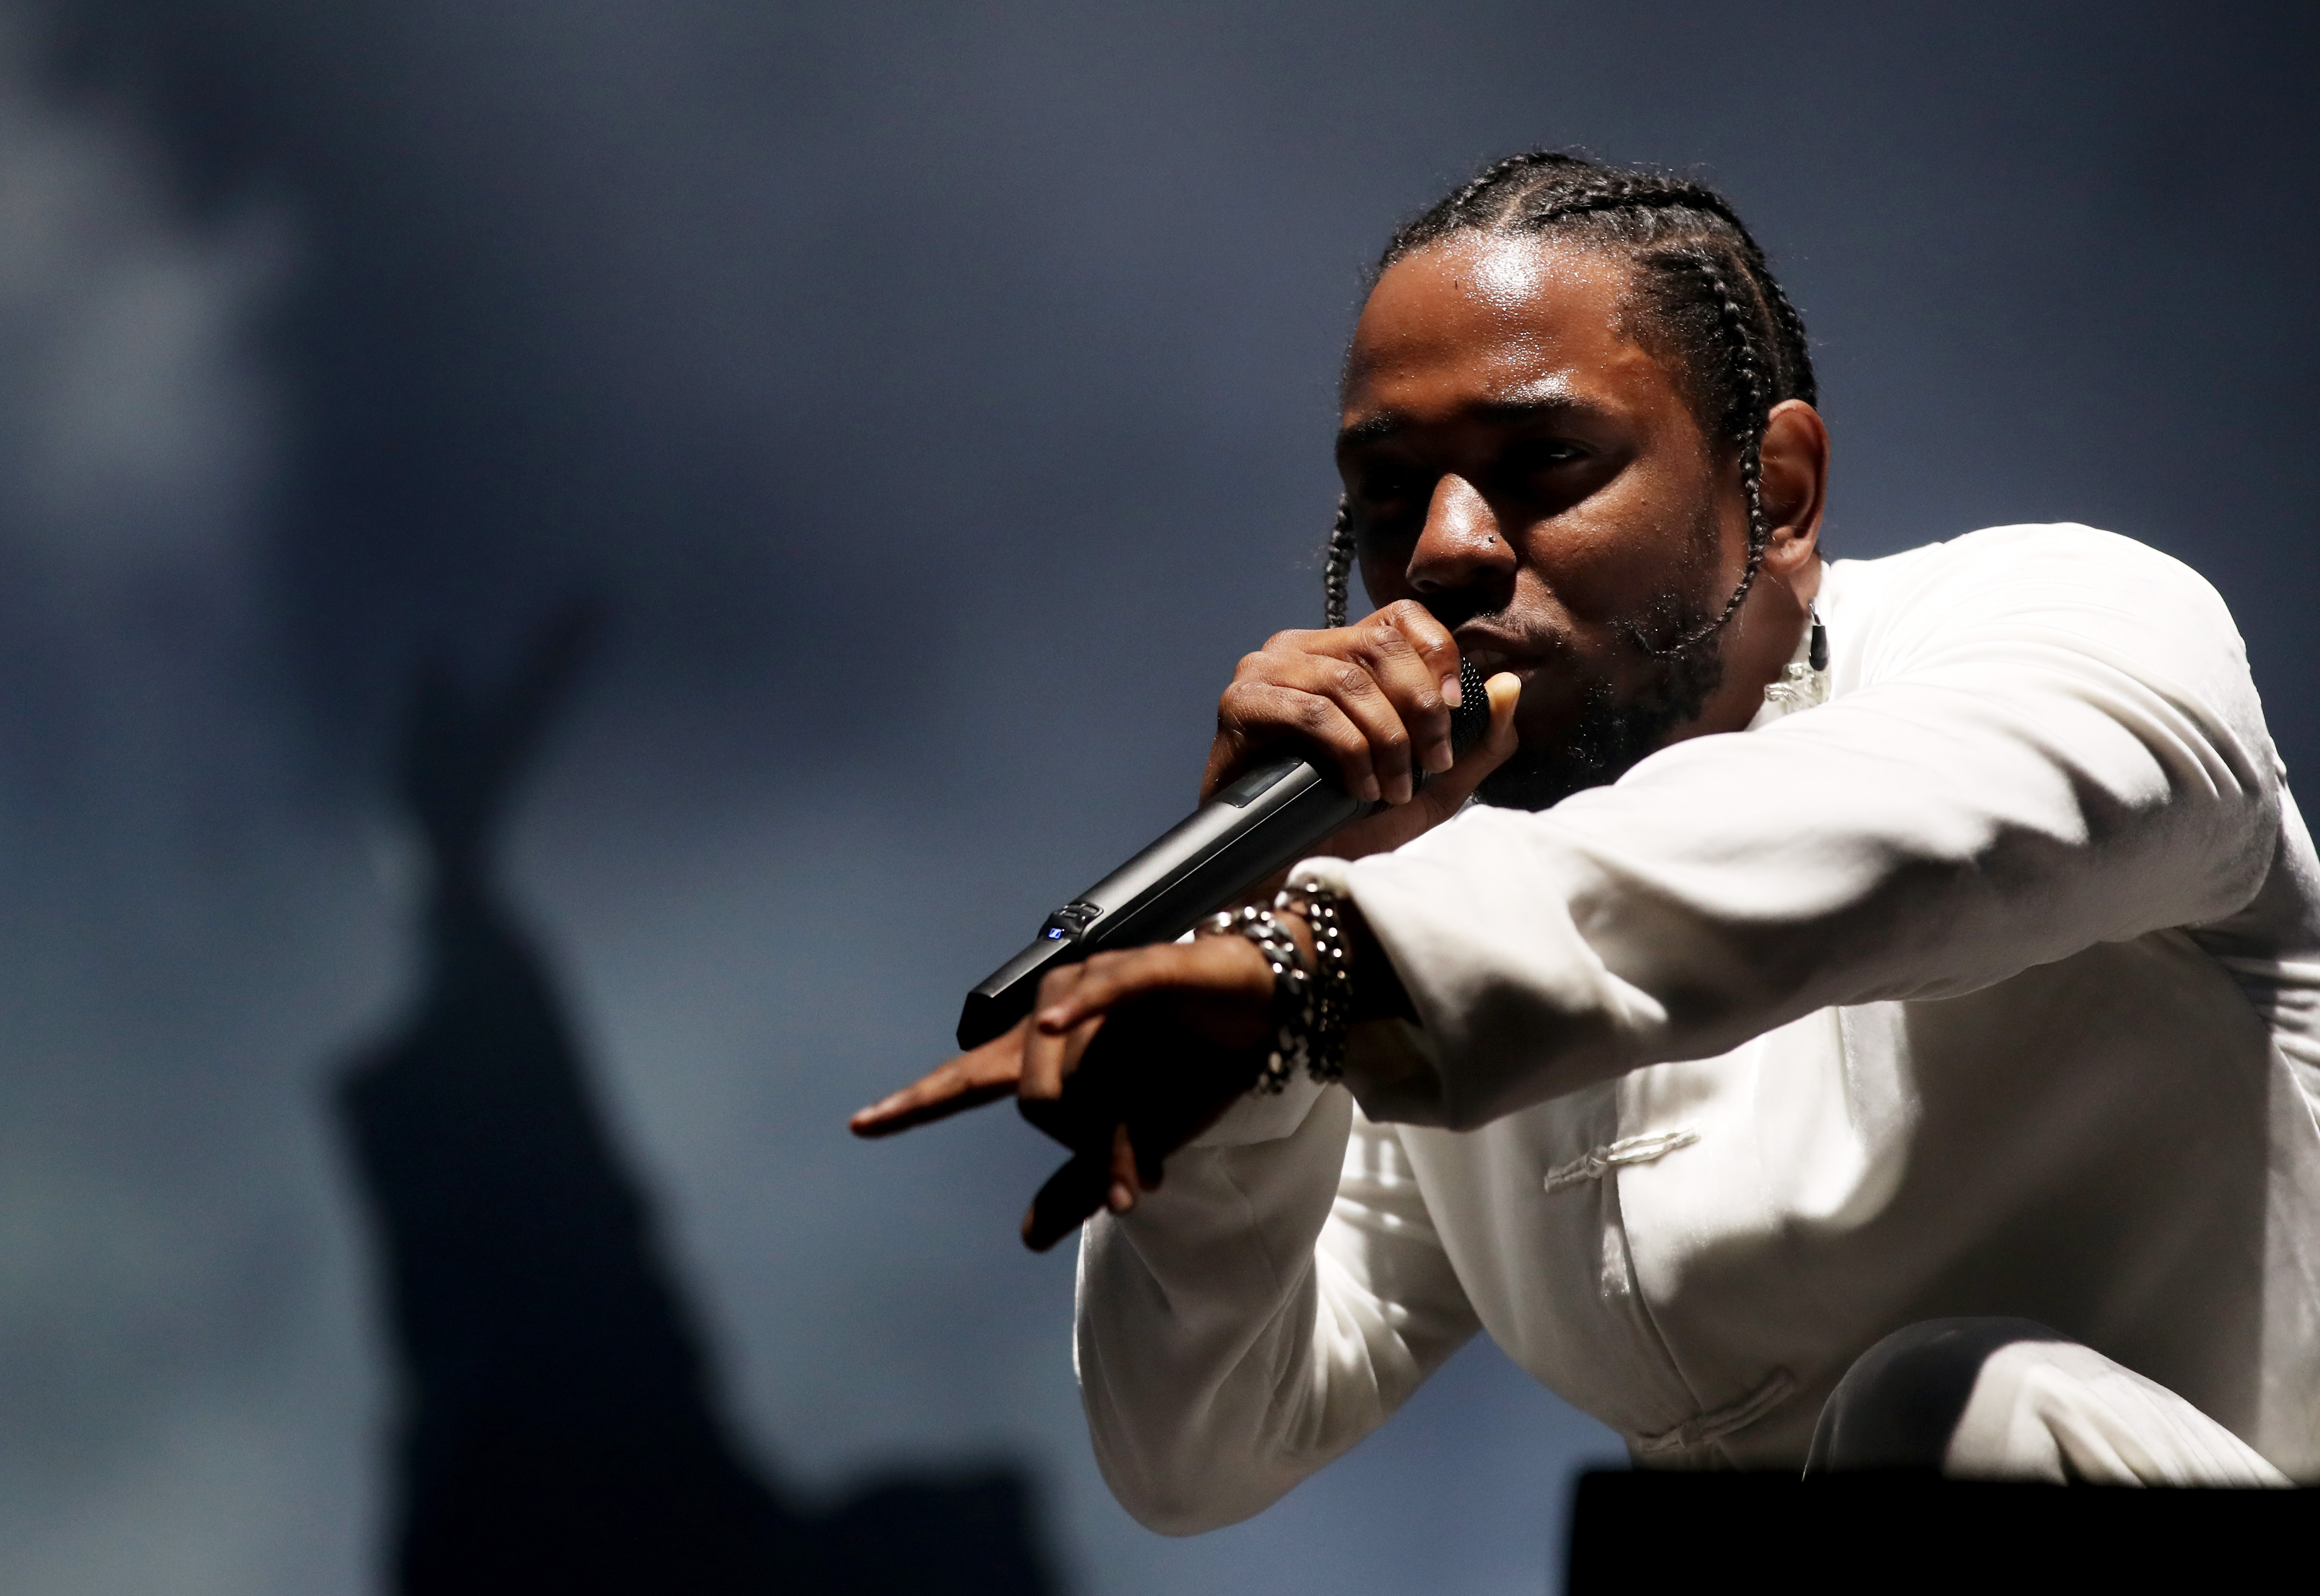 Kendrick Lamar Confirms More Music Is On The Way